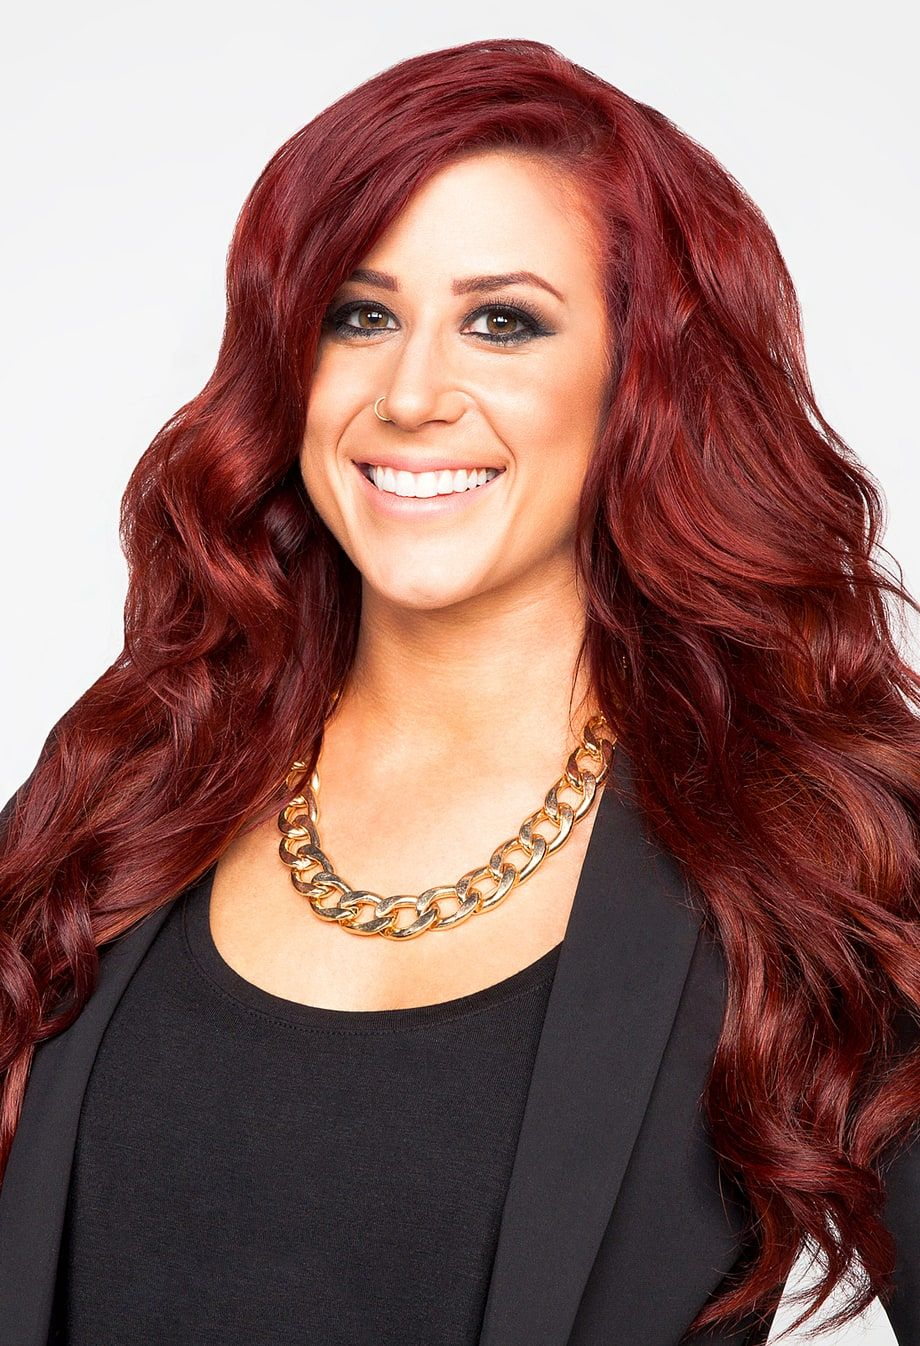 Chelsea Houska Is Ready To Quit 'Teen Mom 2' - Fame10